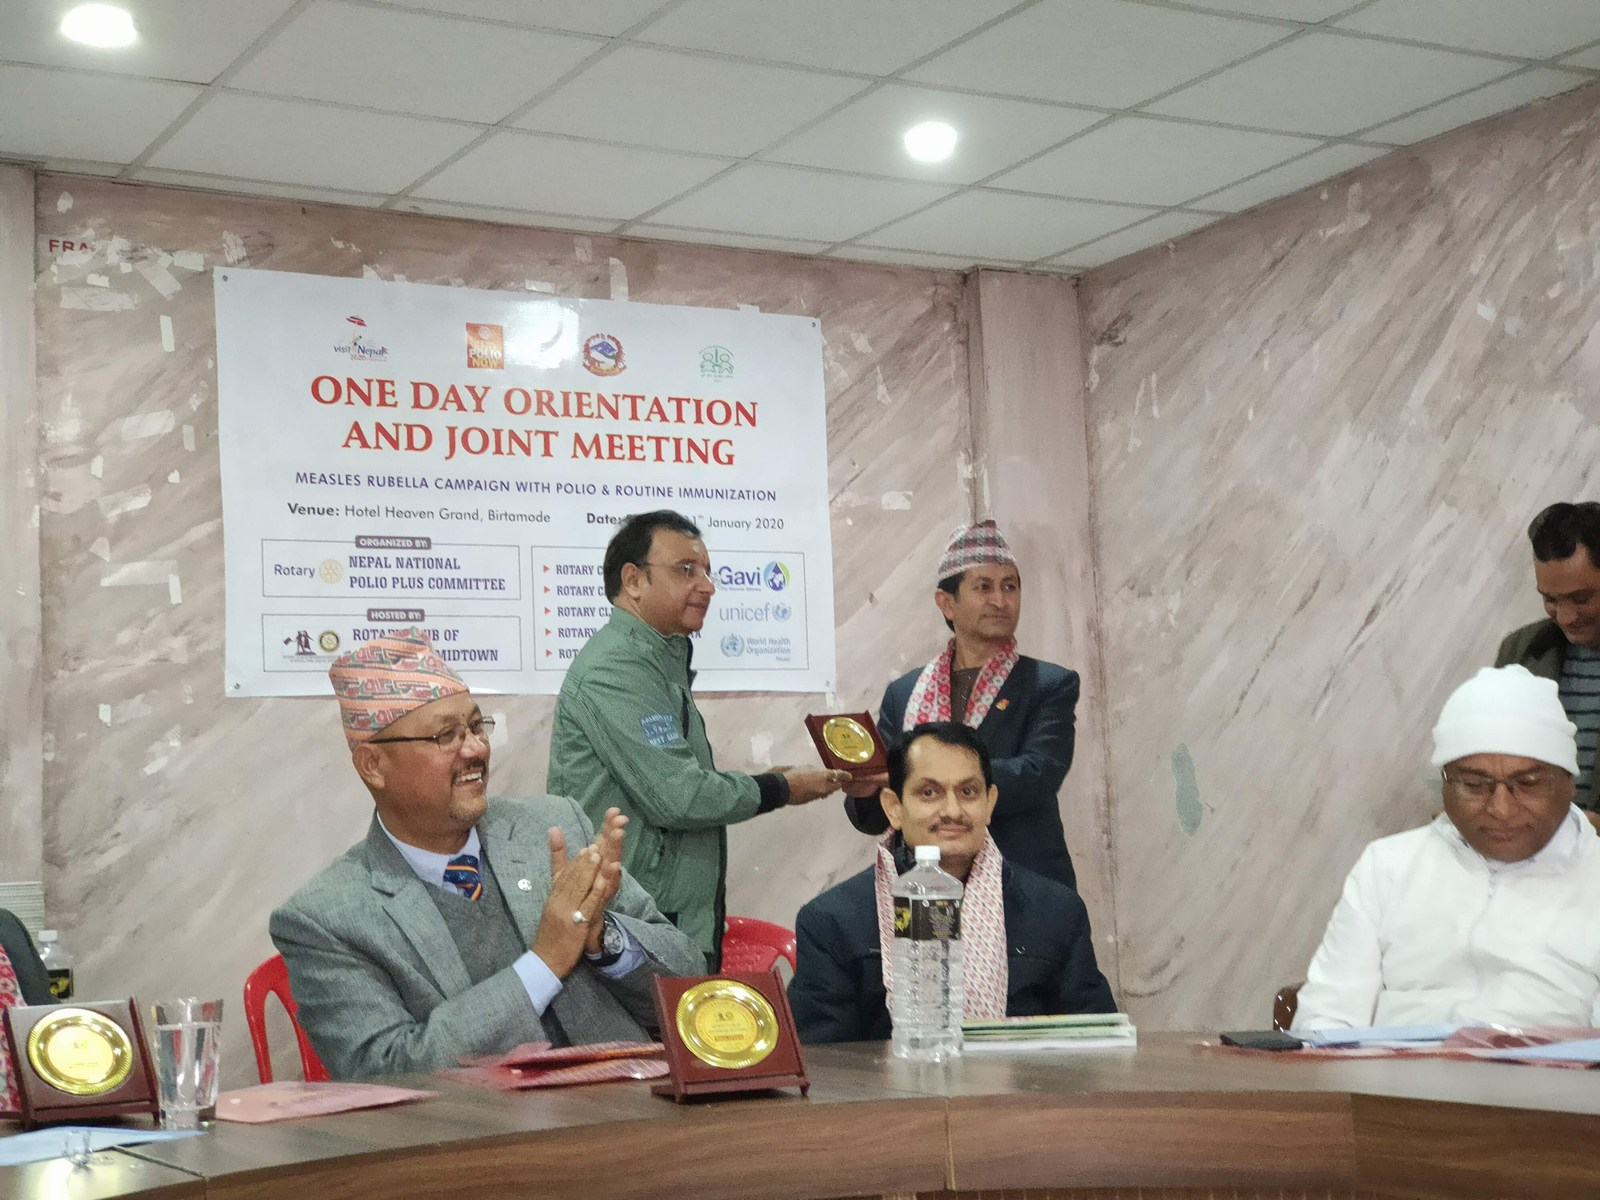 One Day Orientation Joint Meeting About Immunization Rotary Club Of Kakarvitta 12